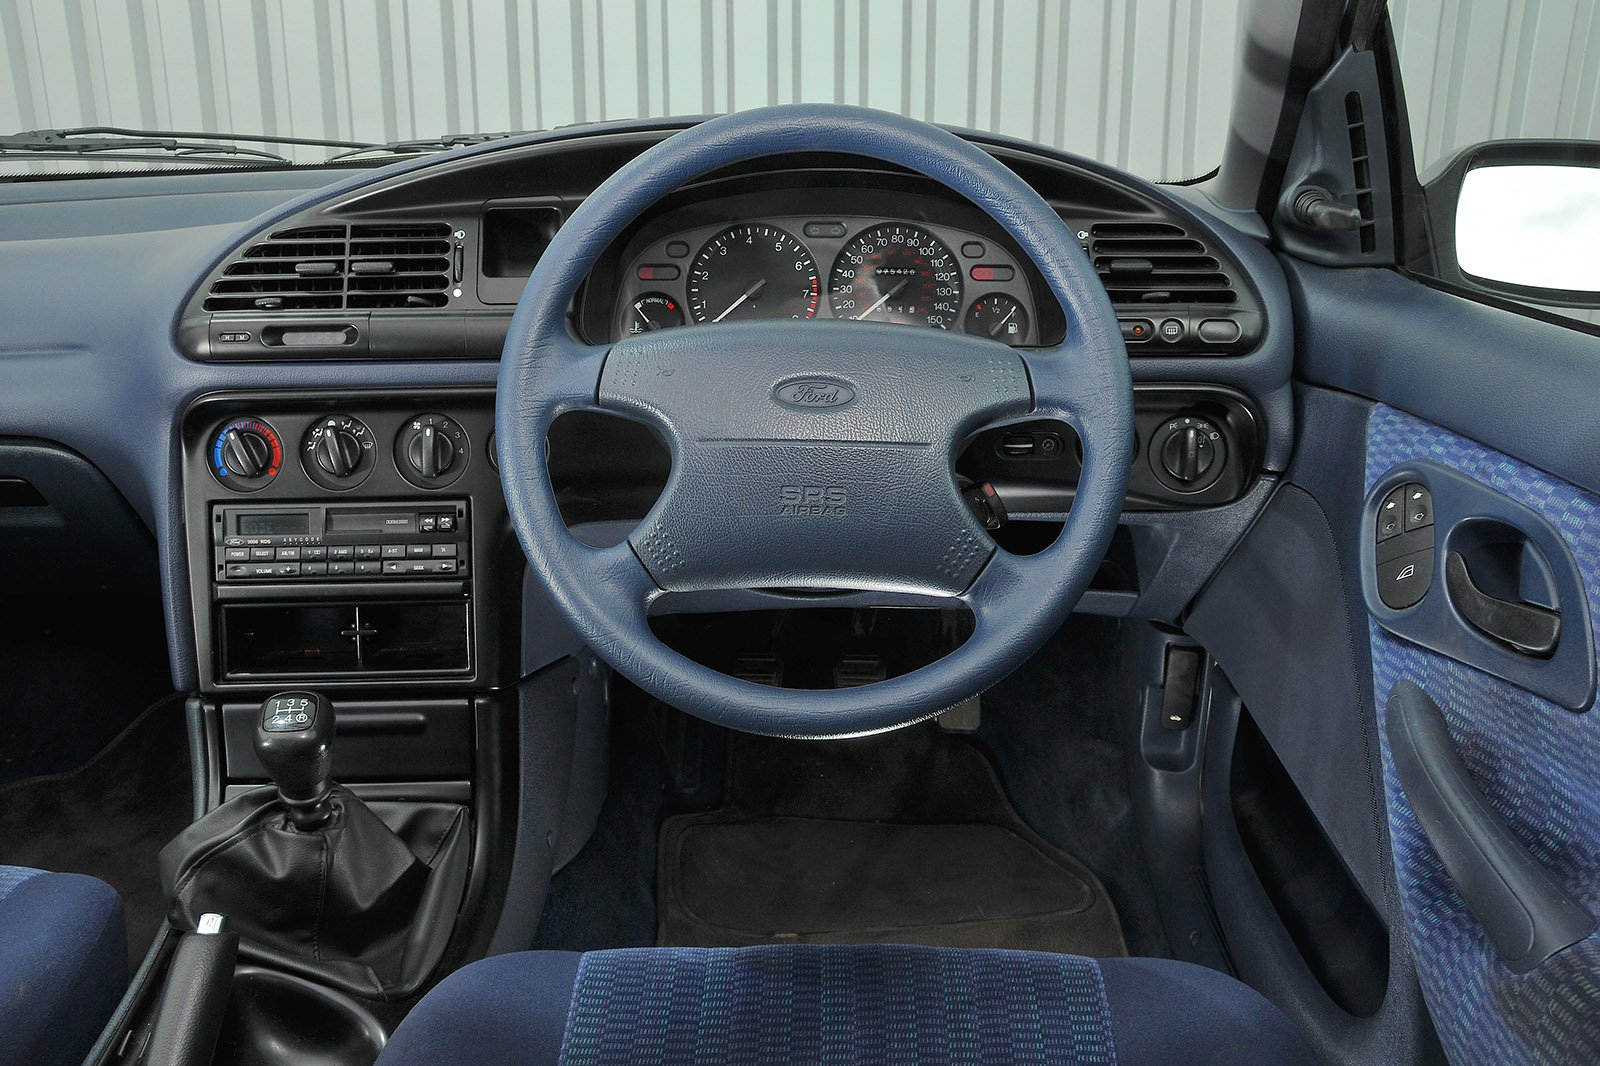 Ford Mondeo 1993 RHD dashboard